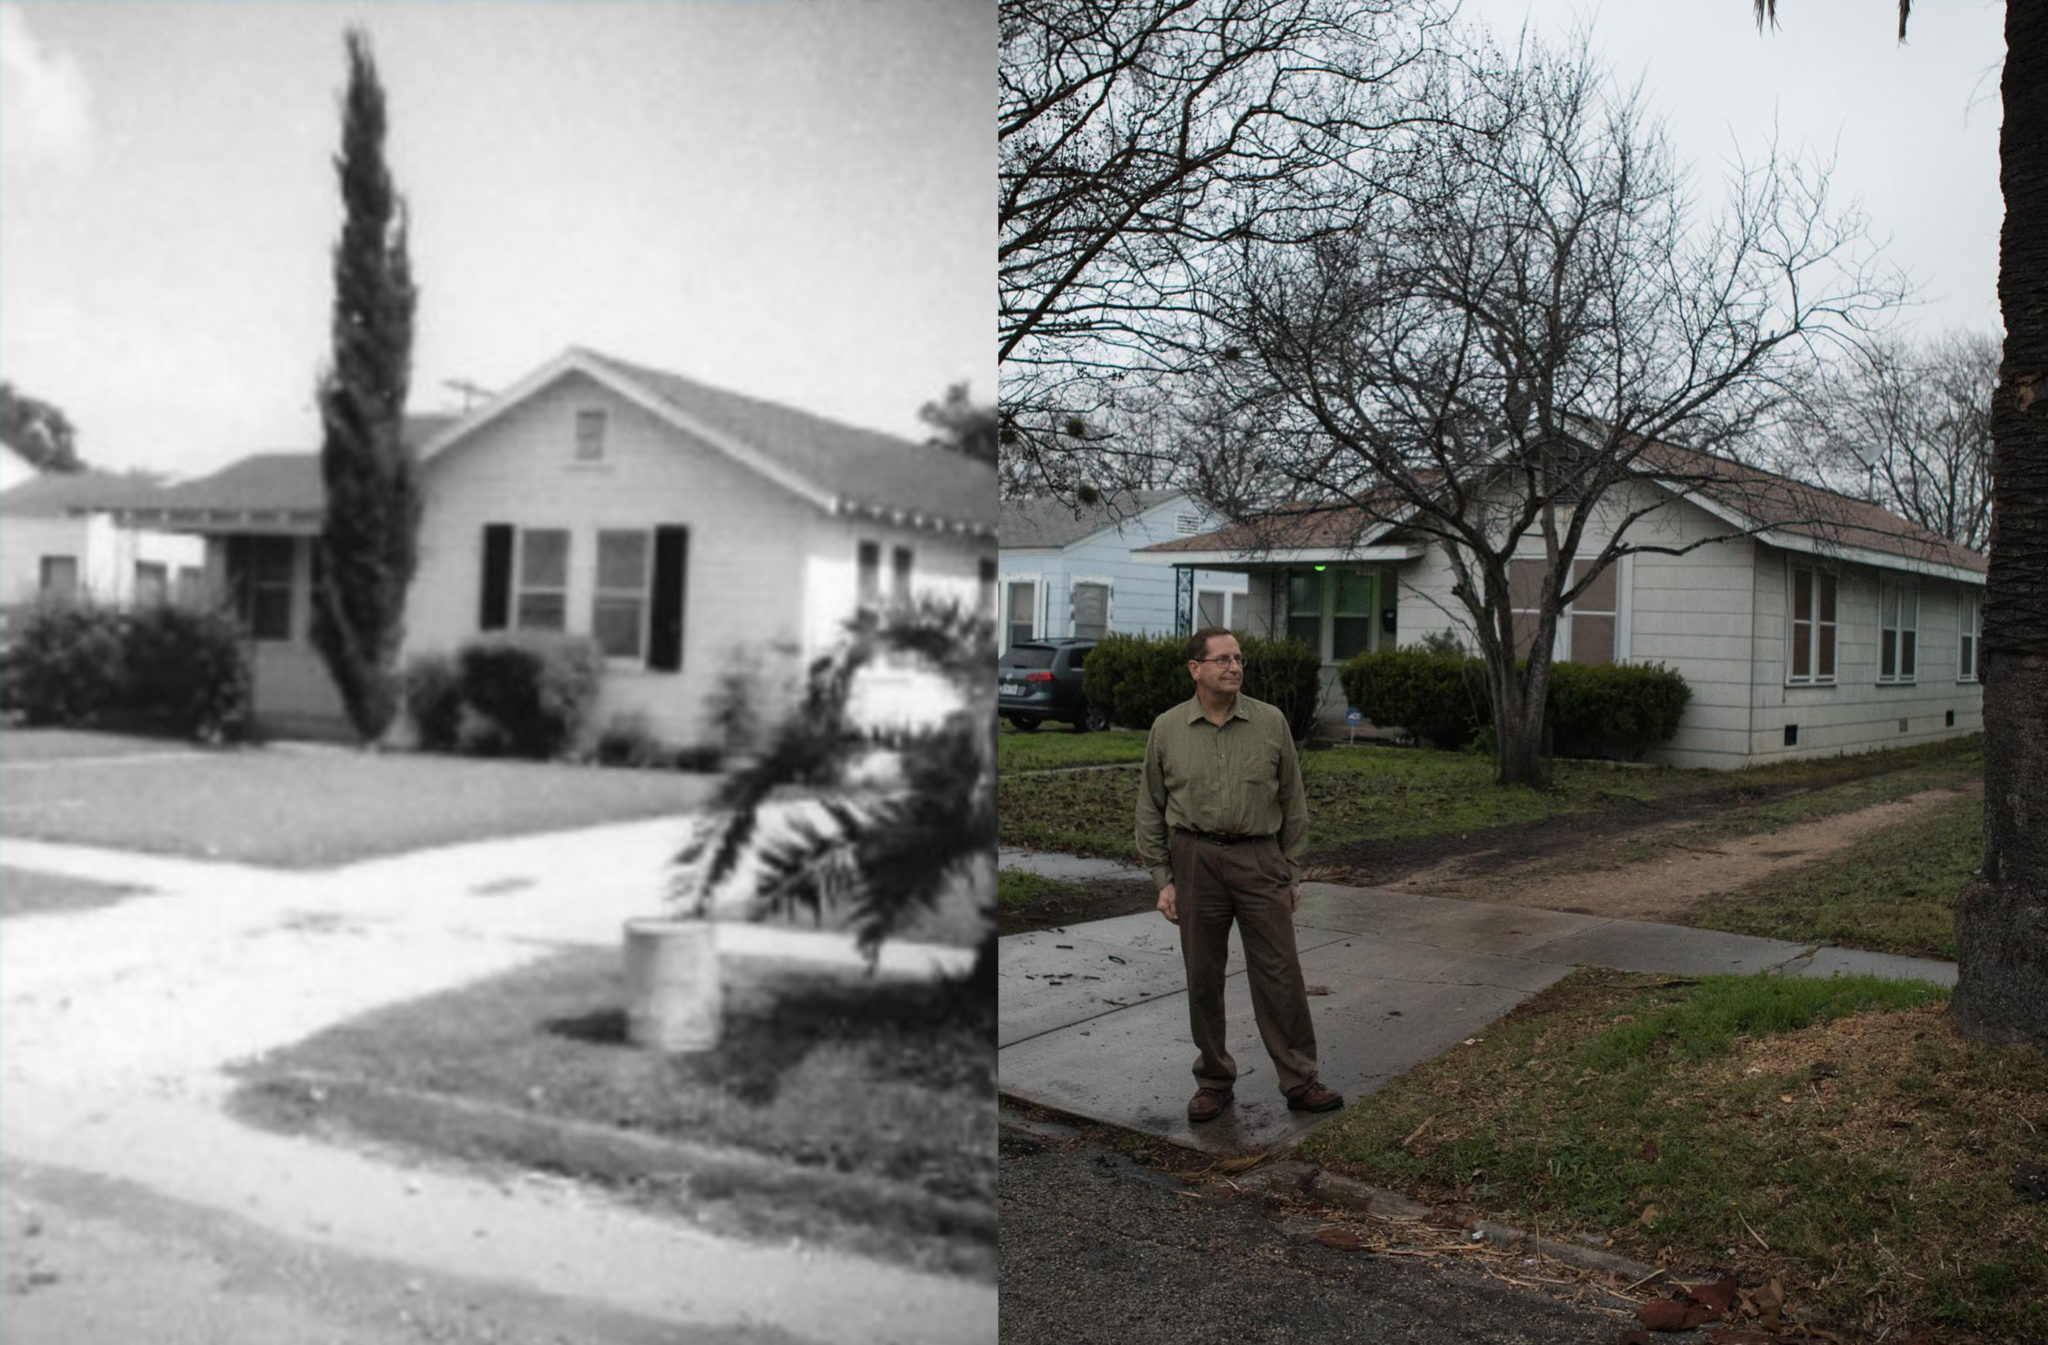 A scanned print shows Gregory Ripps' home as it appeared shortly after his parents bought the house in 1949 (left) and Gregory Ripps stands in front of his home today (right).